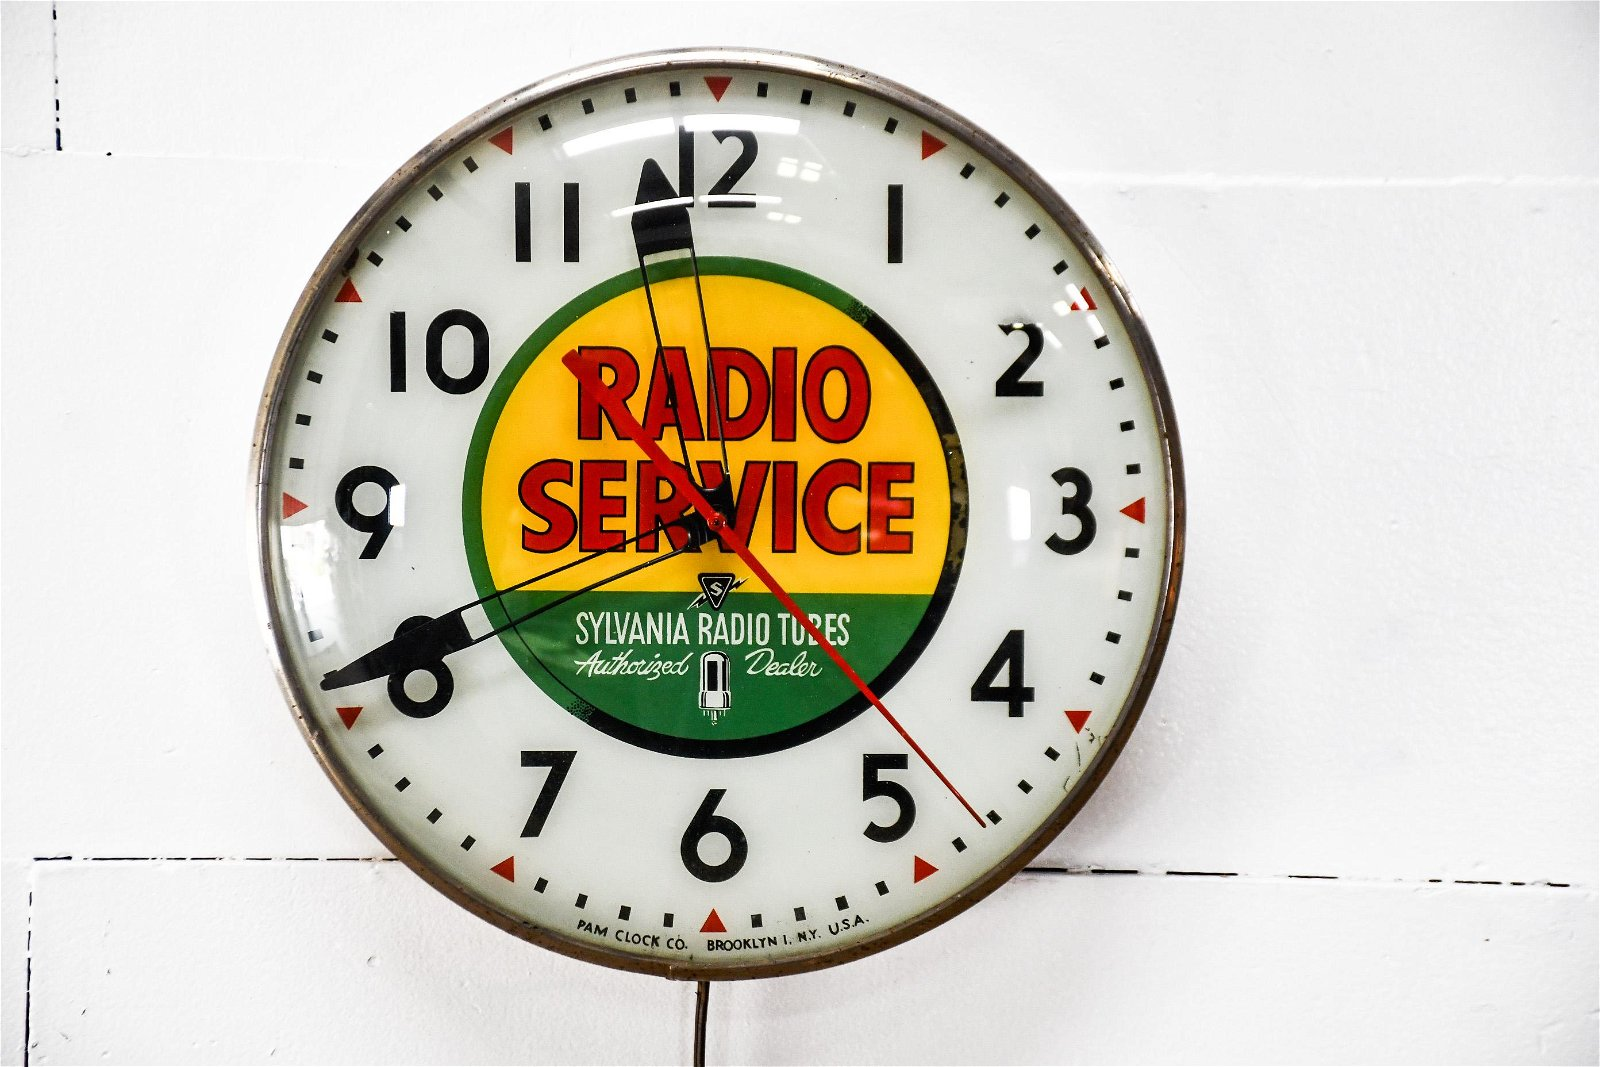 Sylvania Radio Tubes Advertising Clock - works 15""